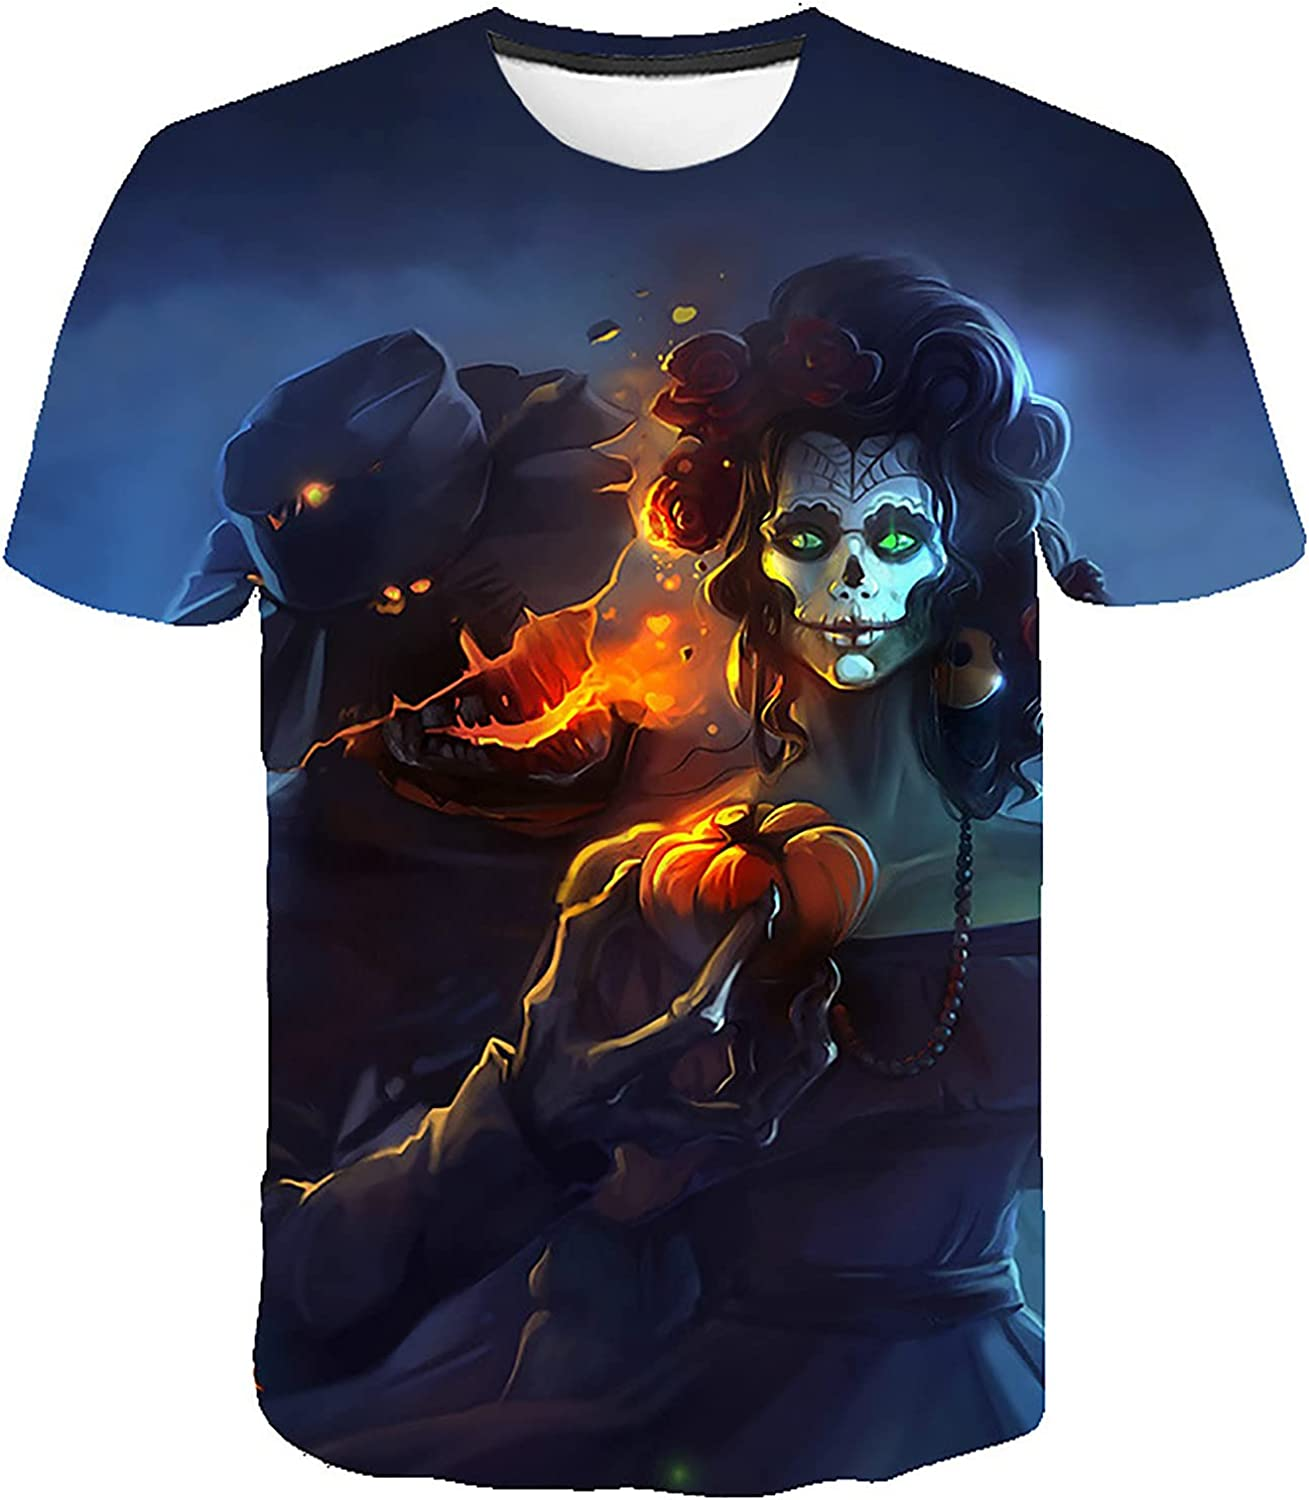 Short Sleeve T-Shirts for Men Halloween Fashion Printed Pullover Tops Casual Summer Crewneck Blouse